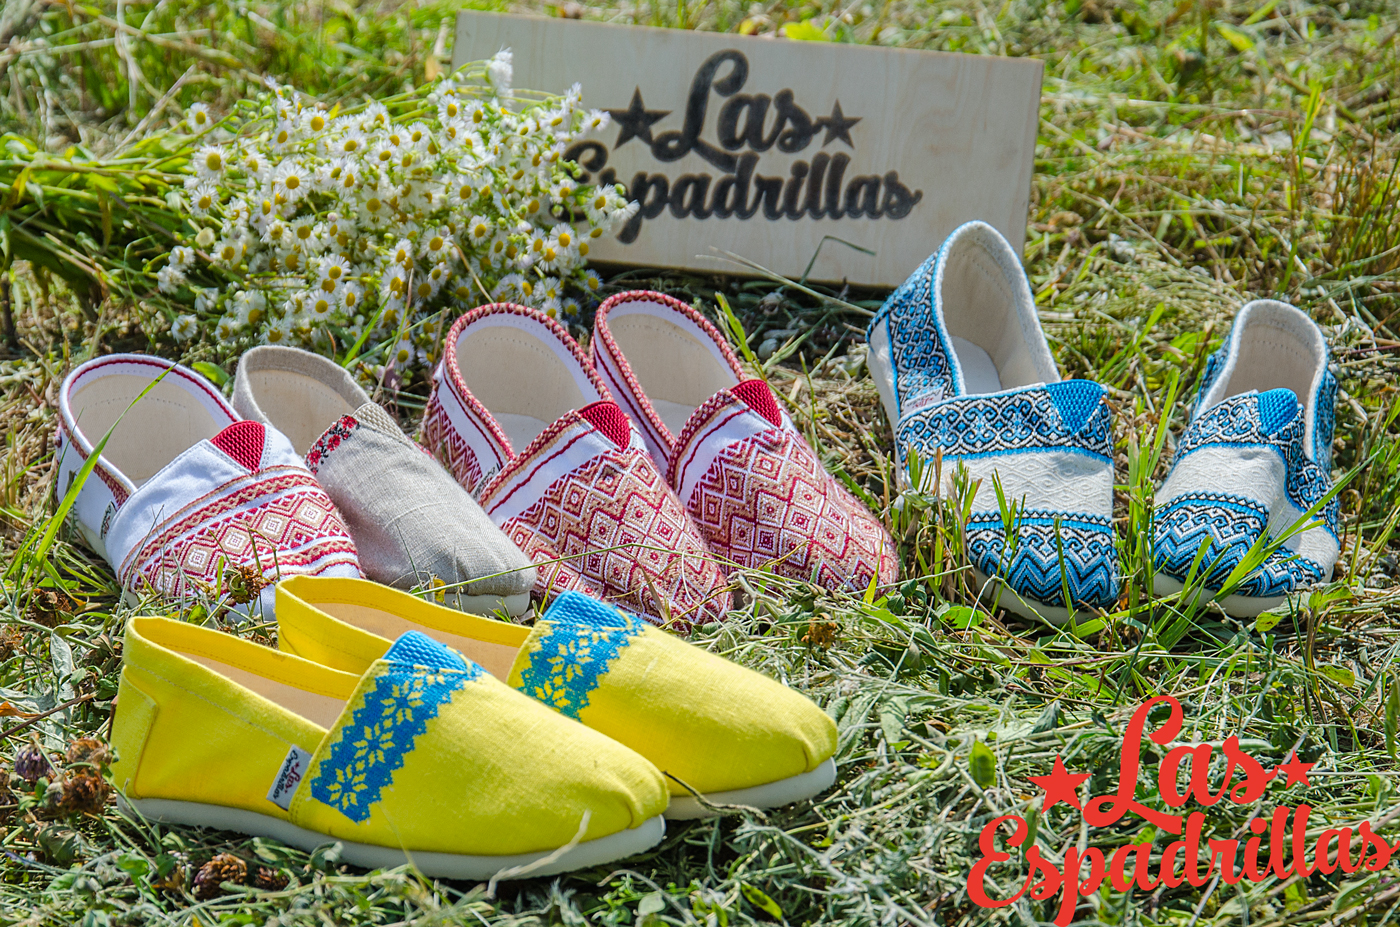 The new collection Las Espadrillas vishivanka